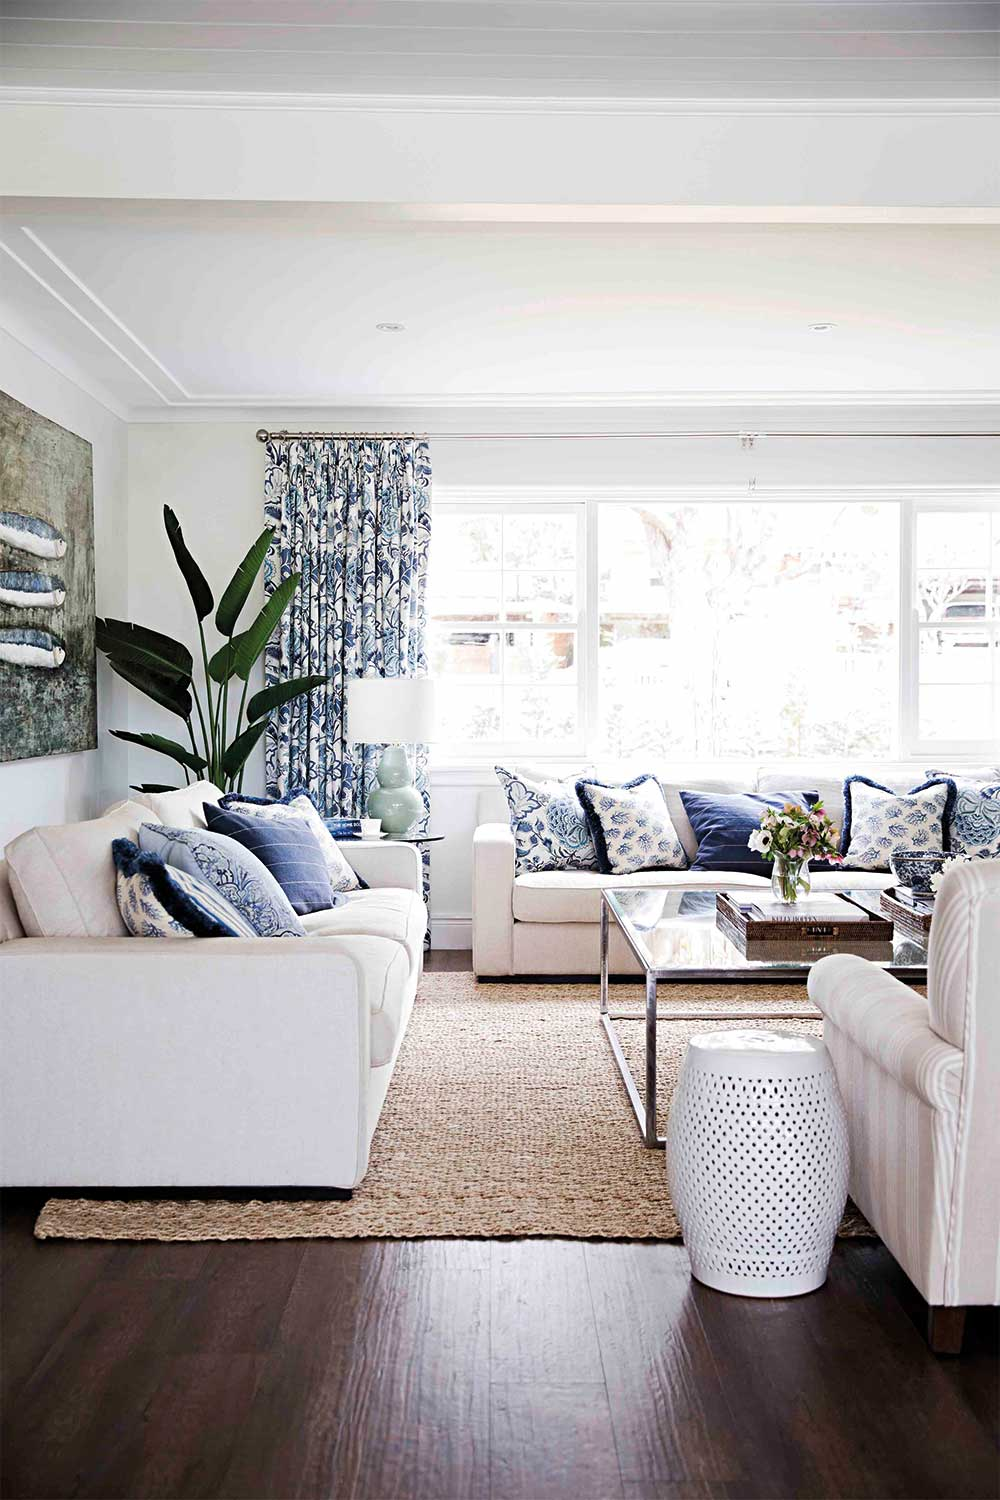 10 easy ways to decorate your home with Hamptons style ... on Beautiful Home Decor  id=68036